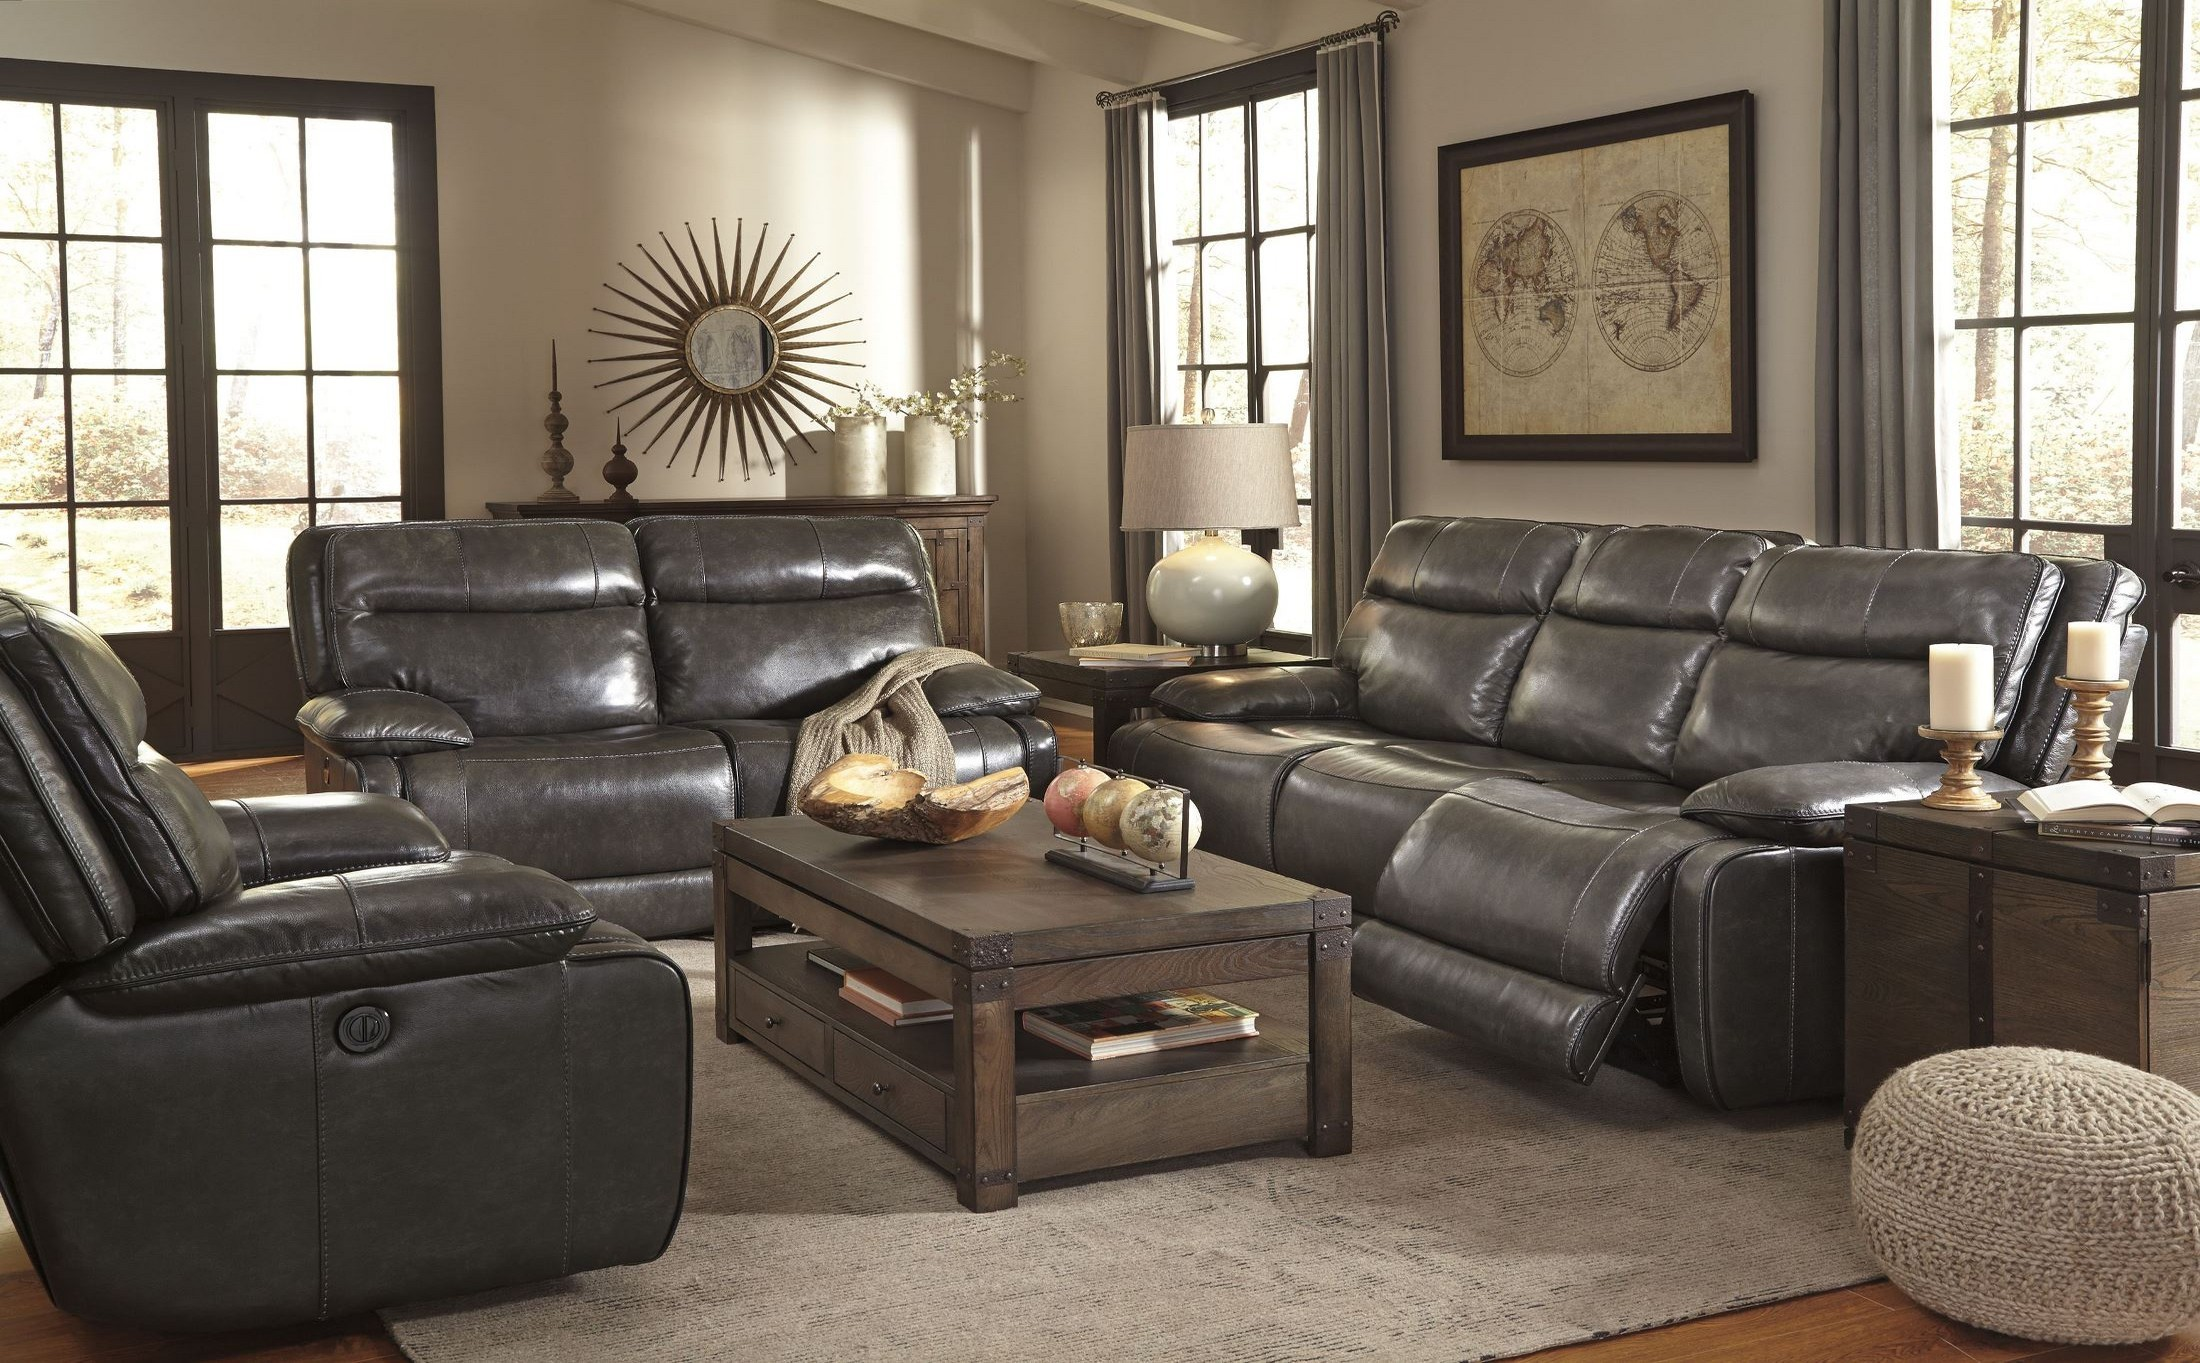 Palladum metal power reclining living room set from ashley u7260187 coleman furniture Metal living room furniture